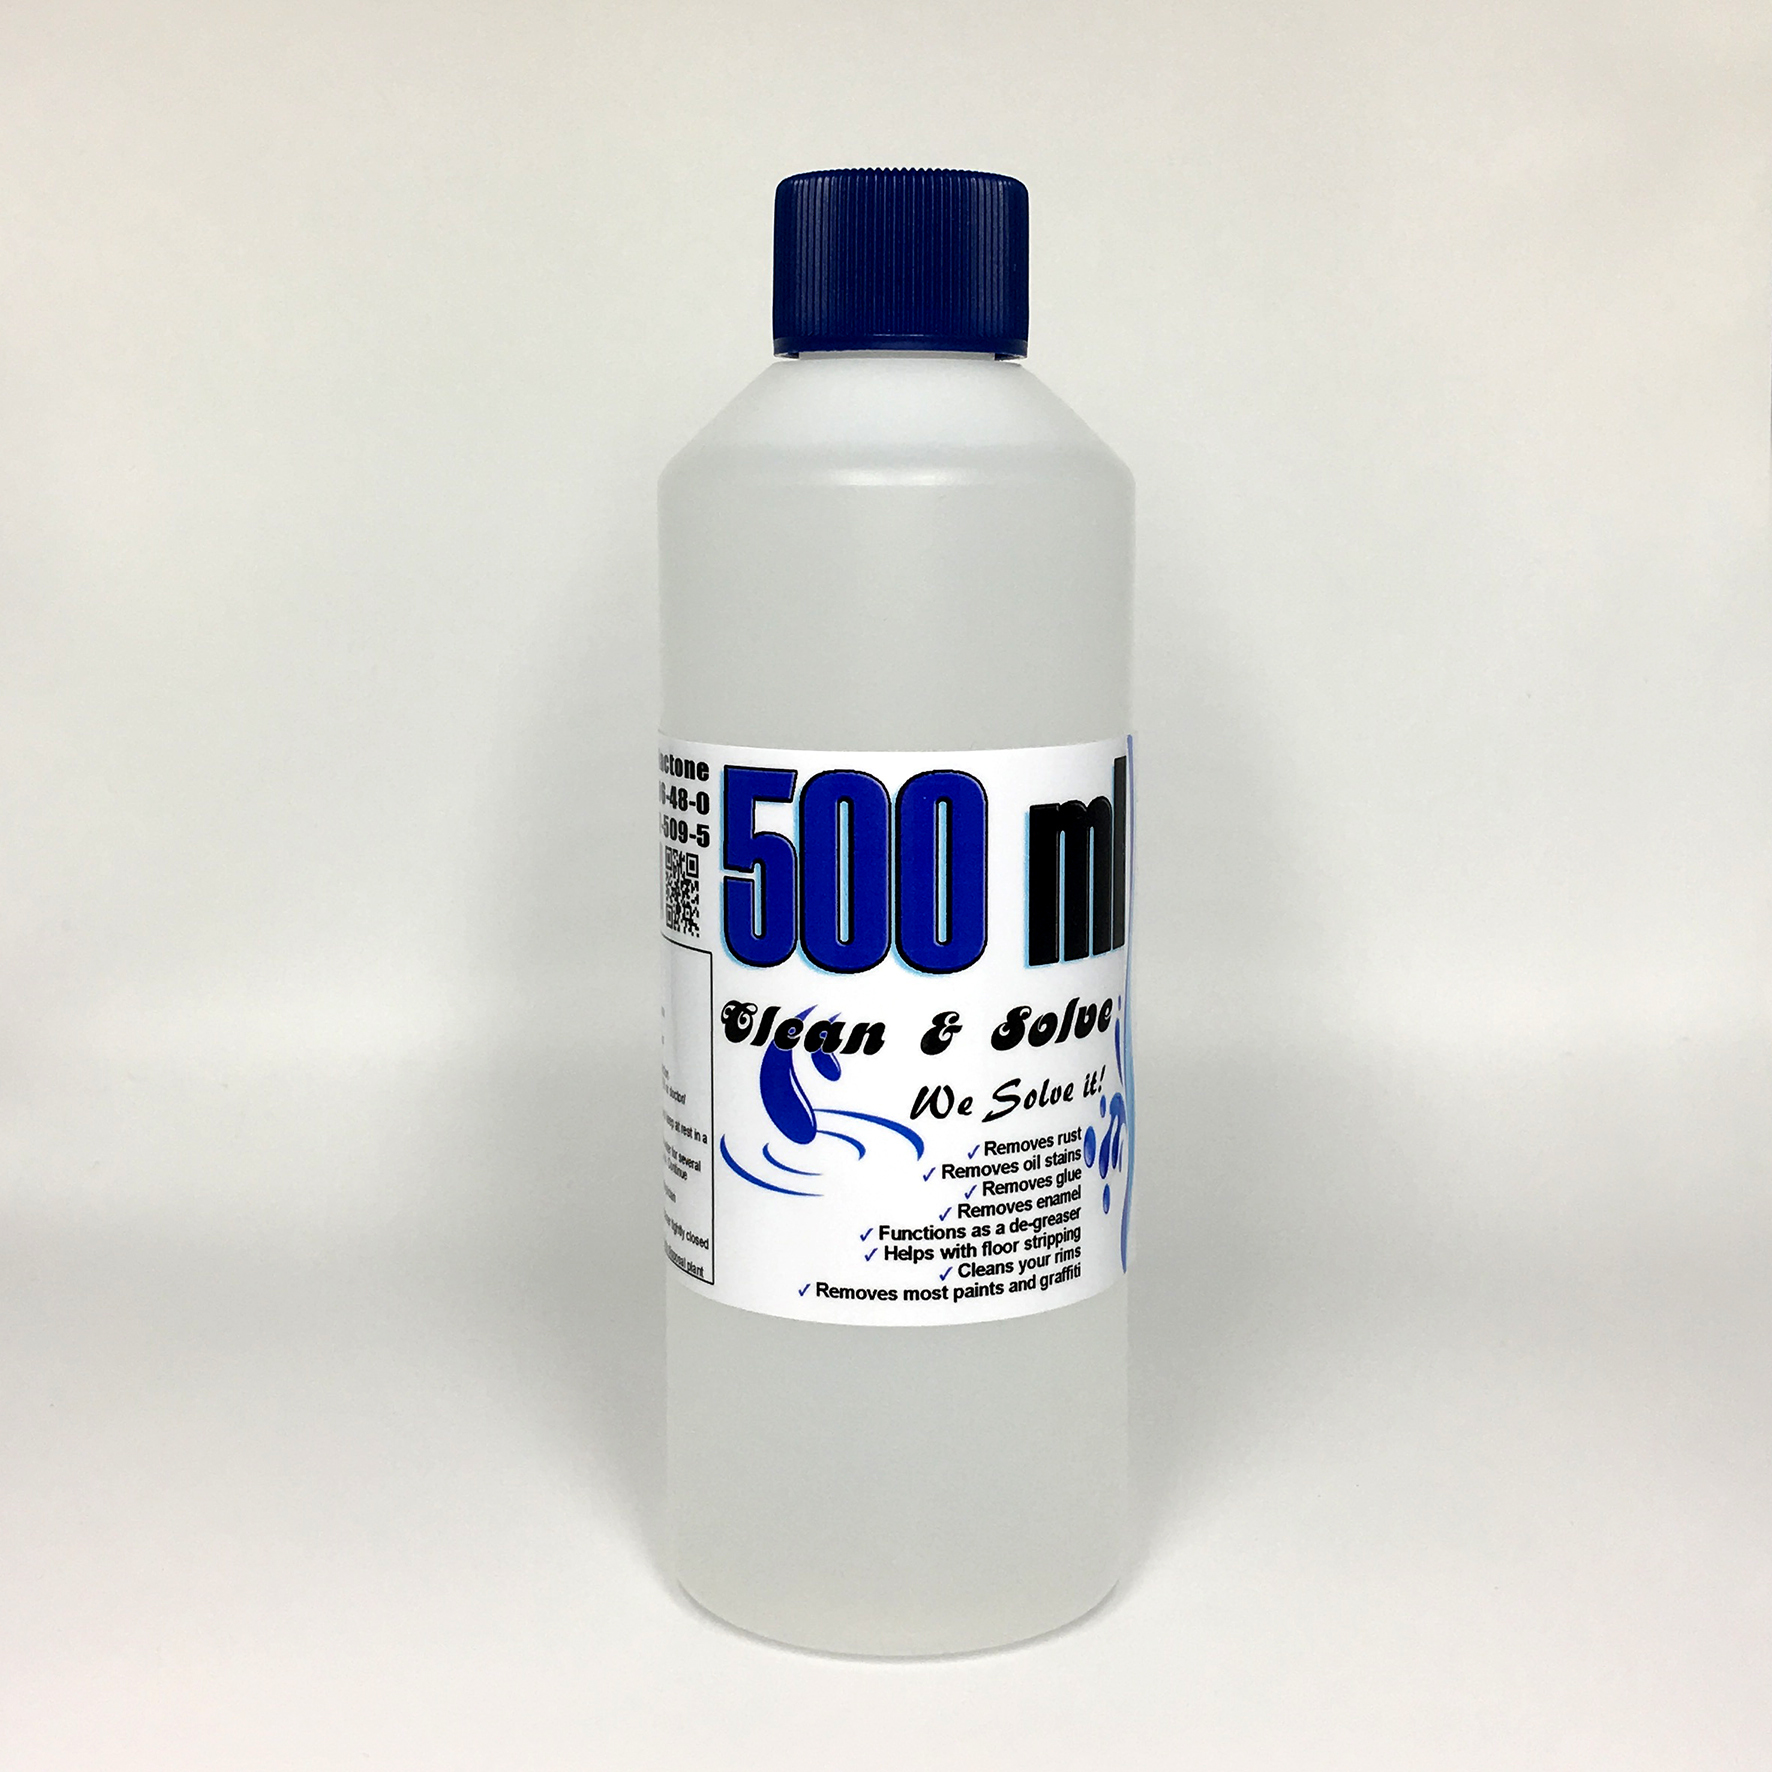 Industrial Cleaner 500 ml Technical Grade 00010 HS Code 29322020